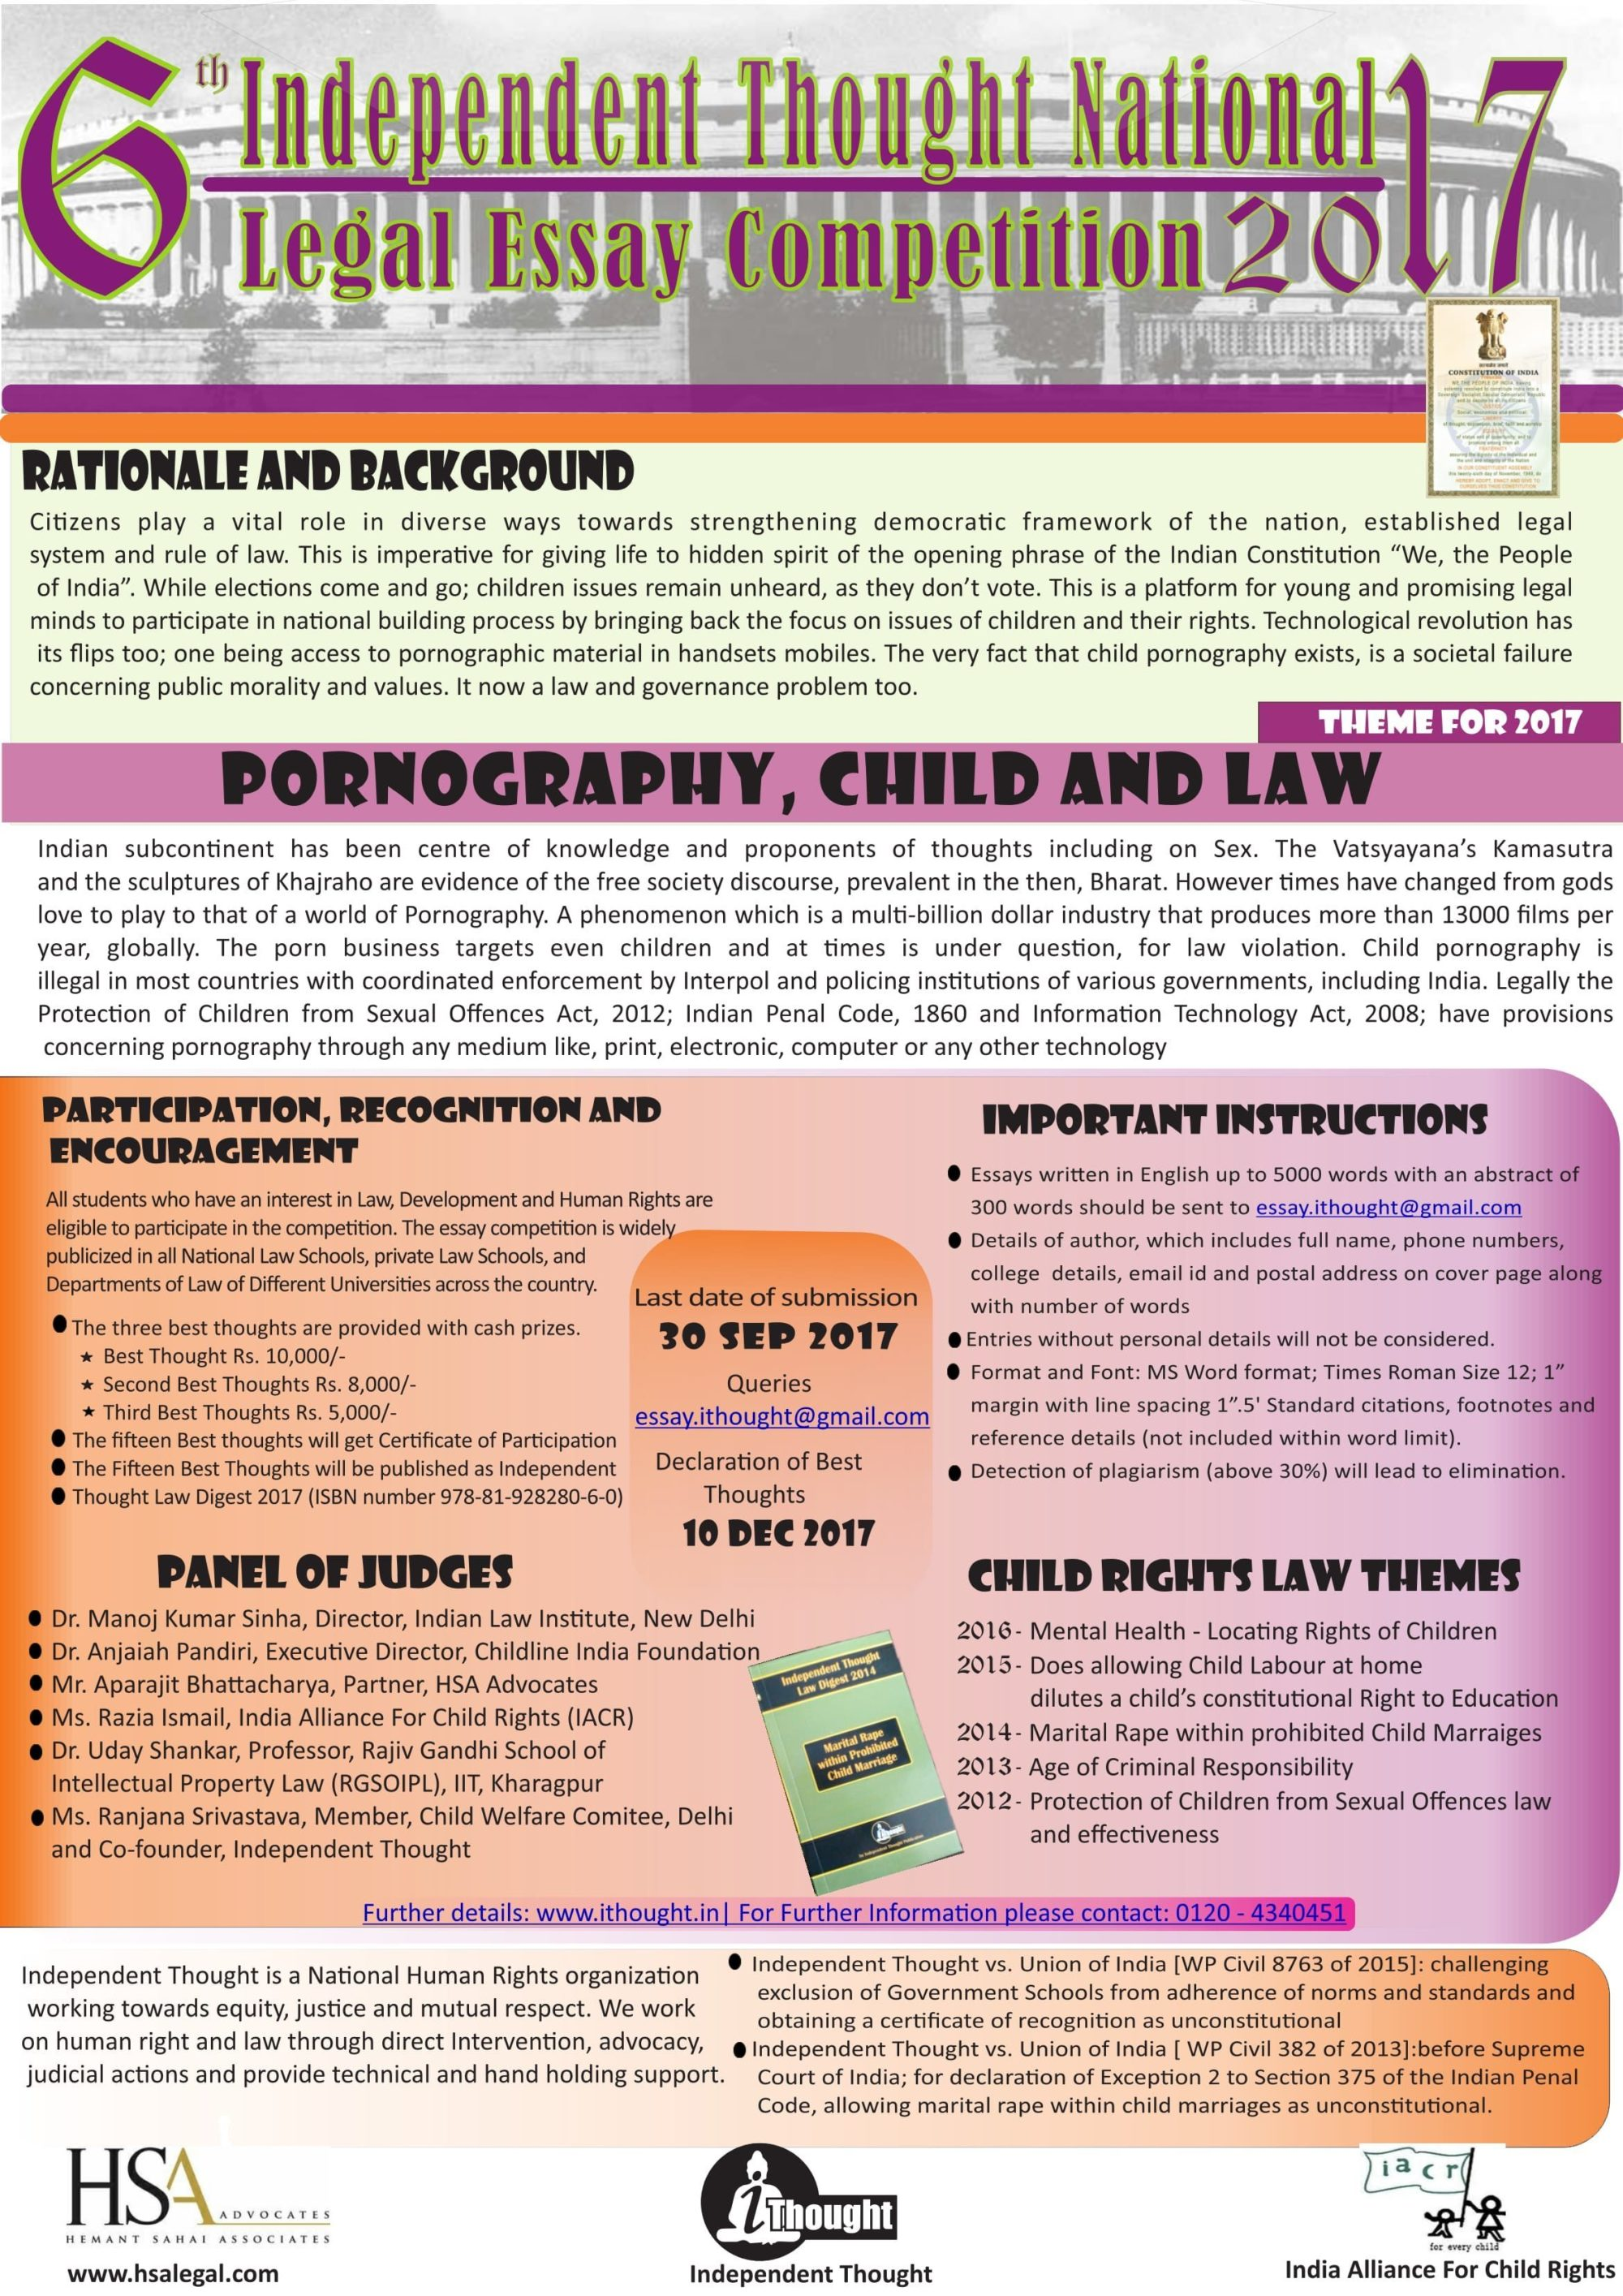 019 Age Of Responsibility Essay Example Poster 6itnlec2017 Final 4july2017 Awful Persuasive Argumentative Criminal Full